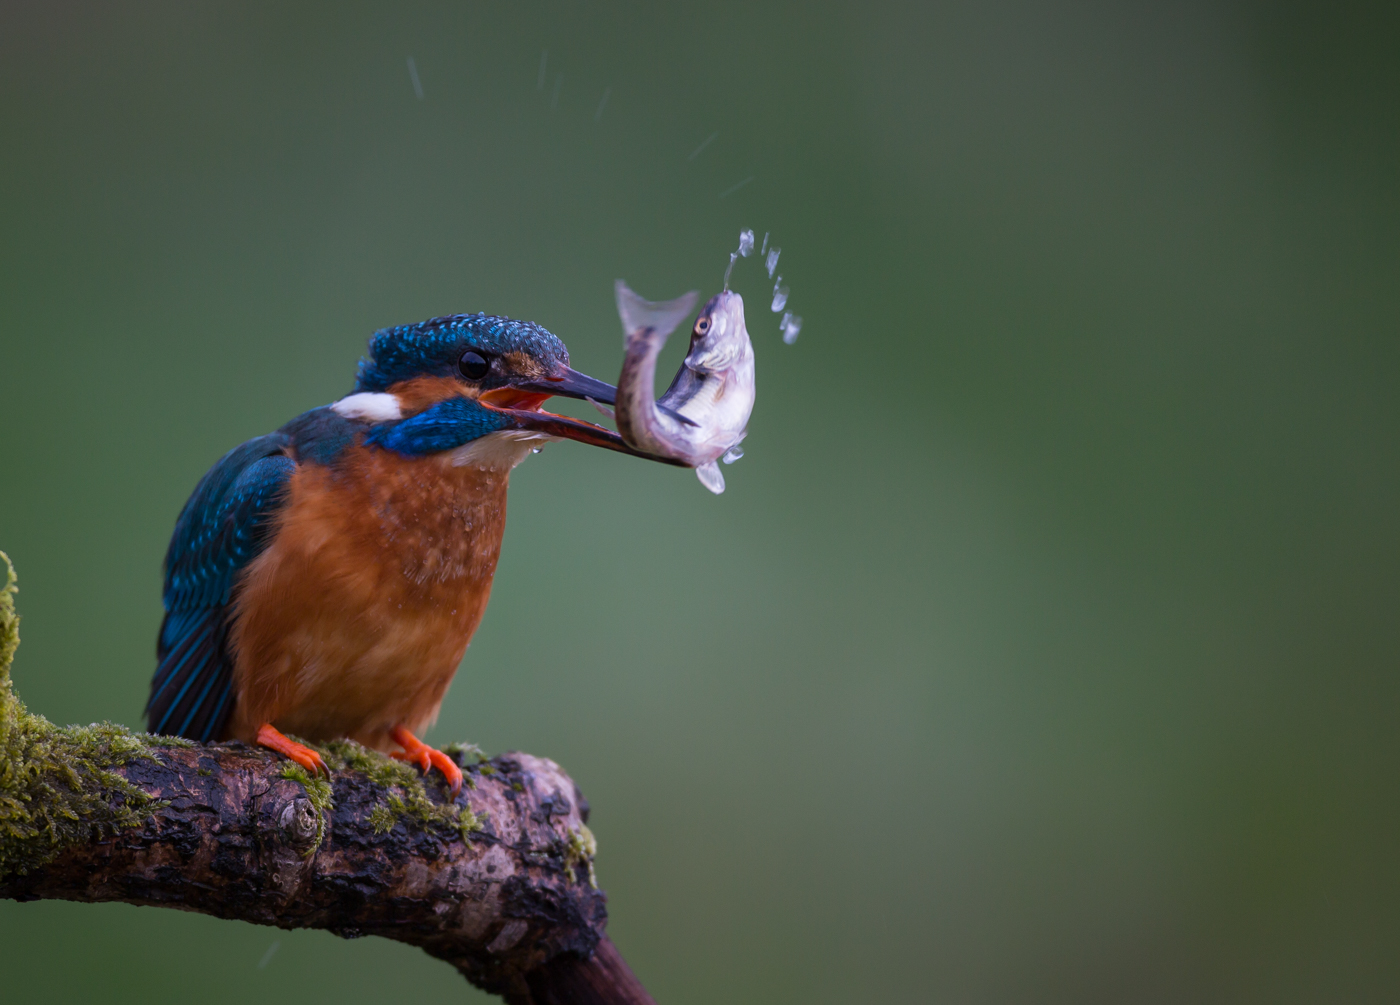 Kingfisher Stunning a Fish